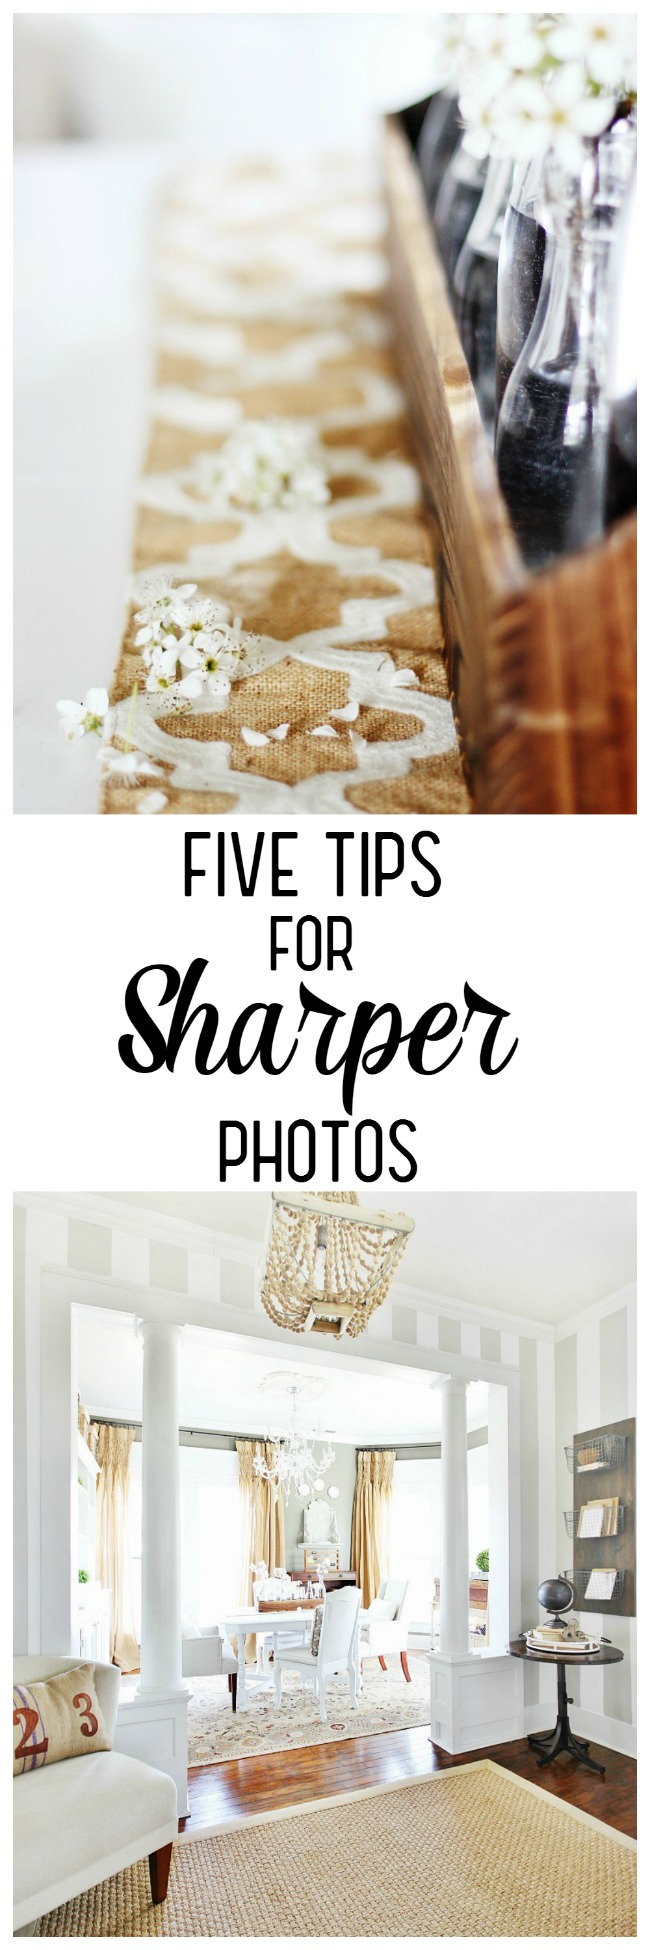 Five-Tips-for-Sharper-Photos